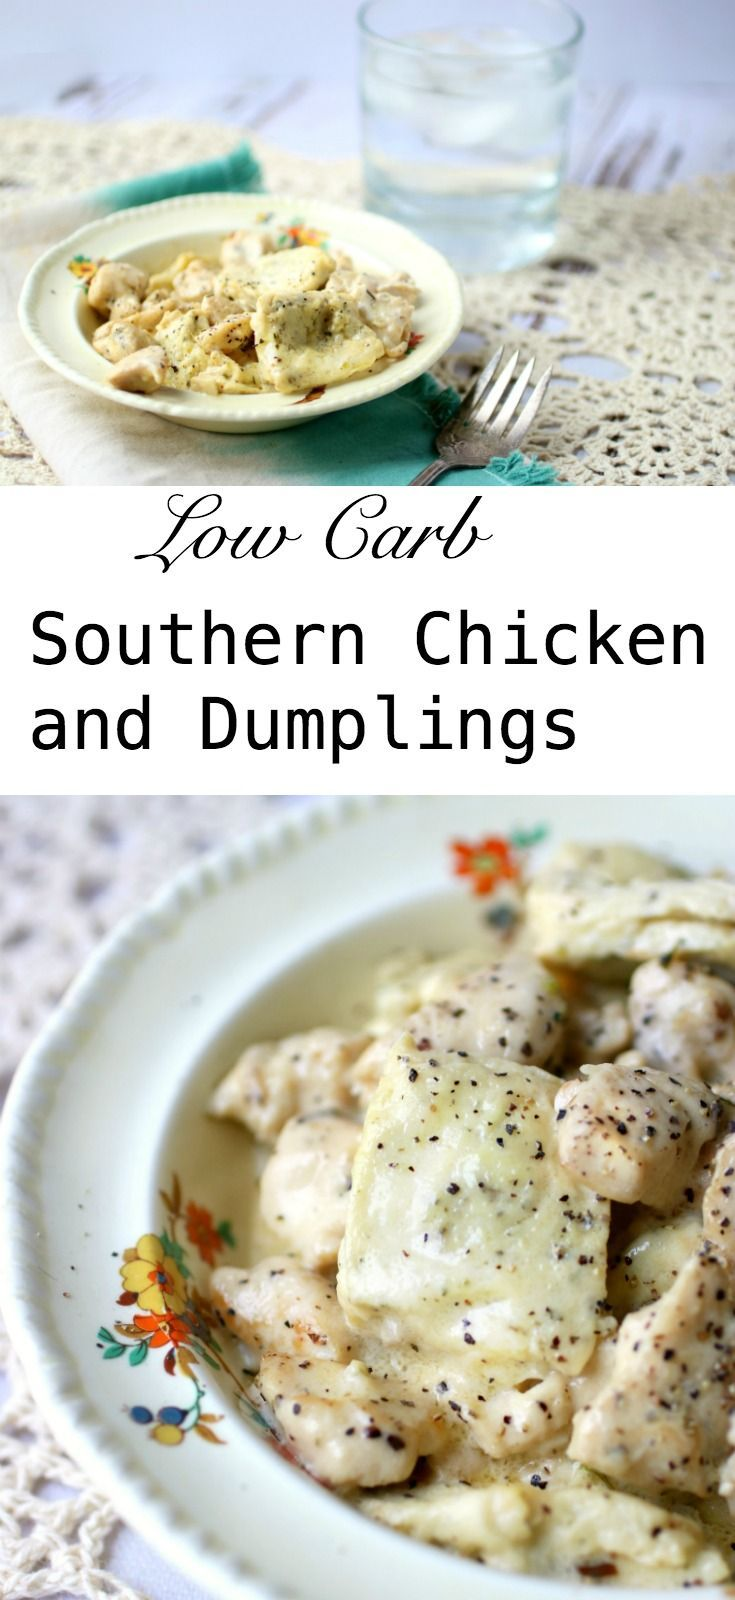 Easy, low carb Southern chicken and dumplings recipe is just jam-packed with old fashioned flavor! This family favorite has everything about traditional chicken and dumplings that you love but leaves out the pesky carbs. Stir up a pot of this home cooked comfort food and enjoy! Just 3 net carbs. #lowcarbrecipe #southerncomfortfood via @maryelowcarb-ology